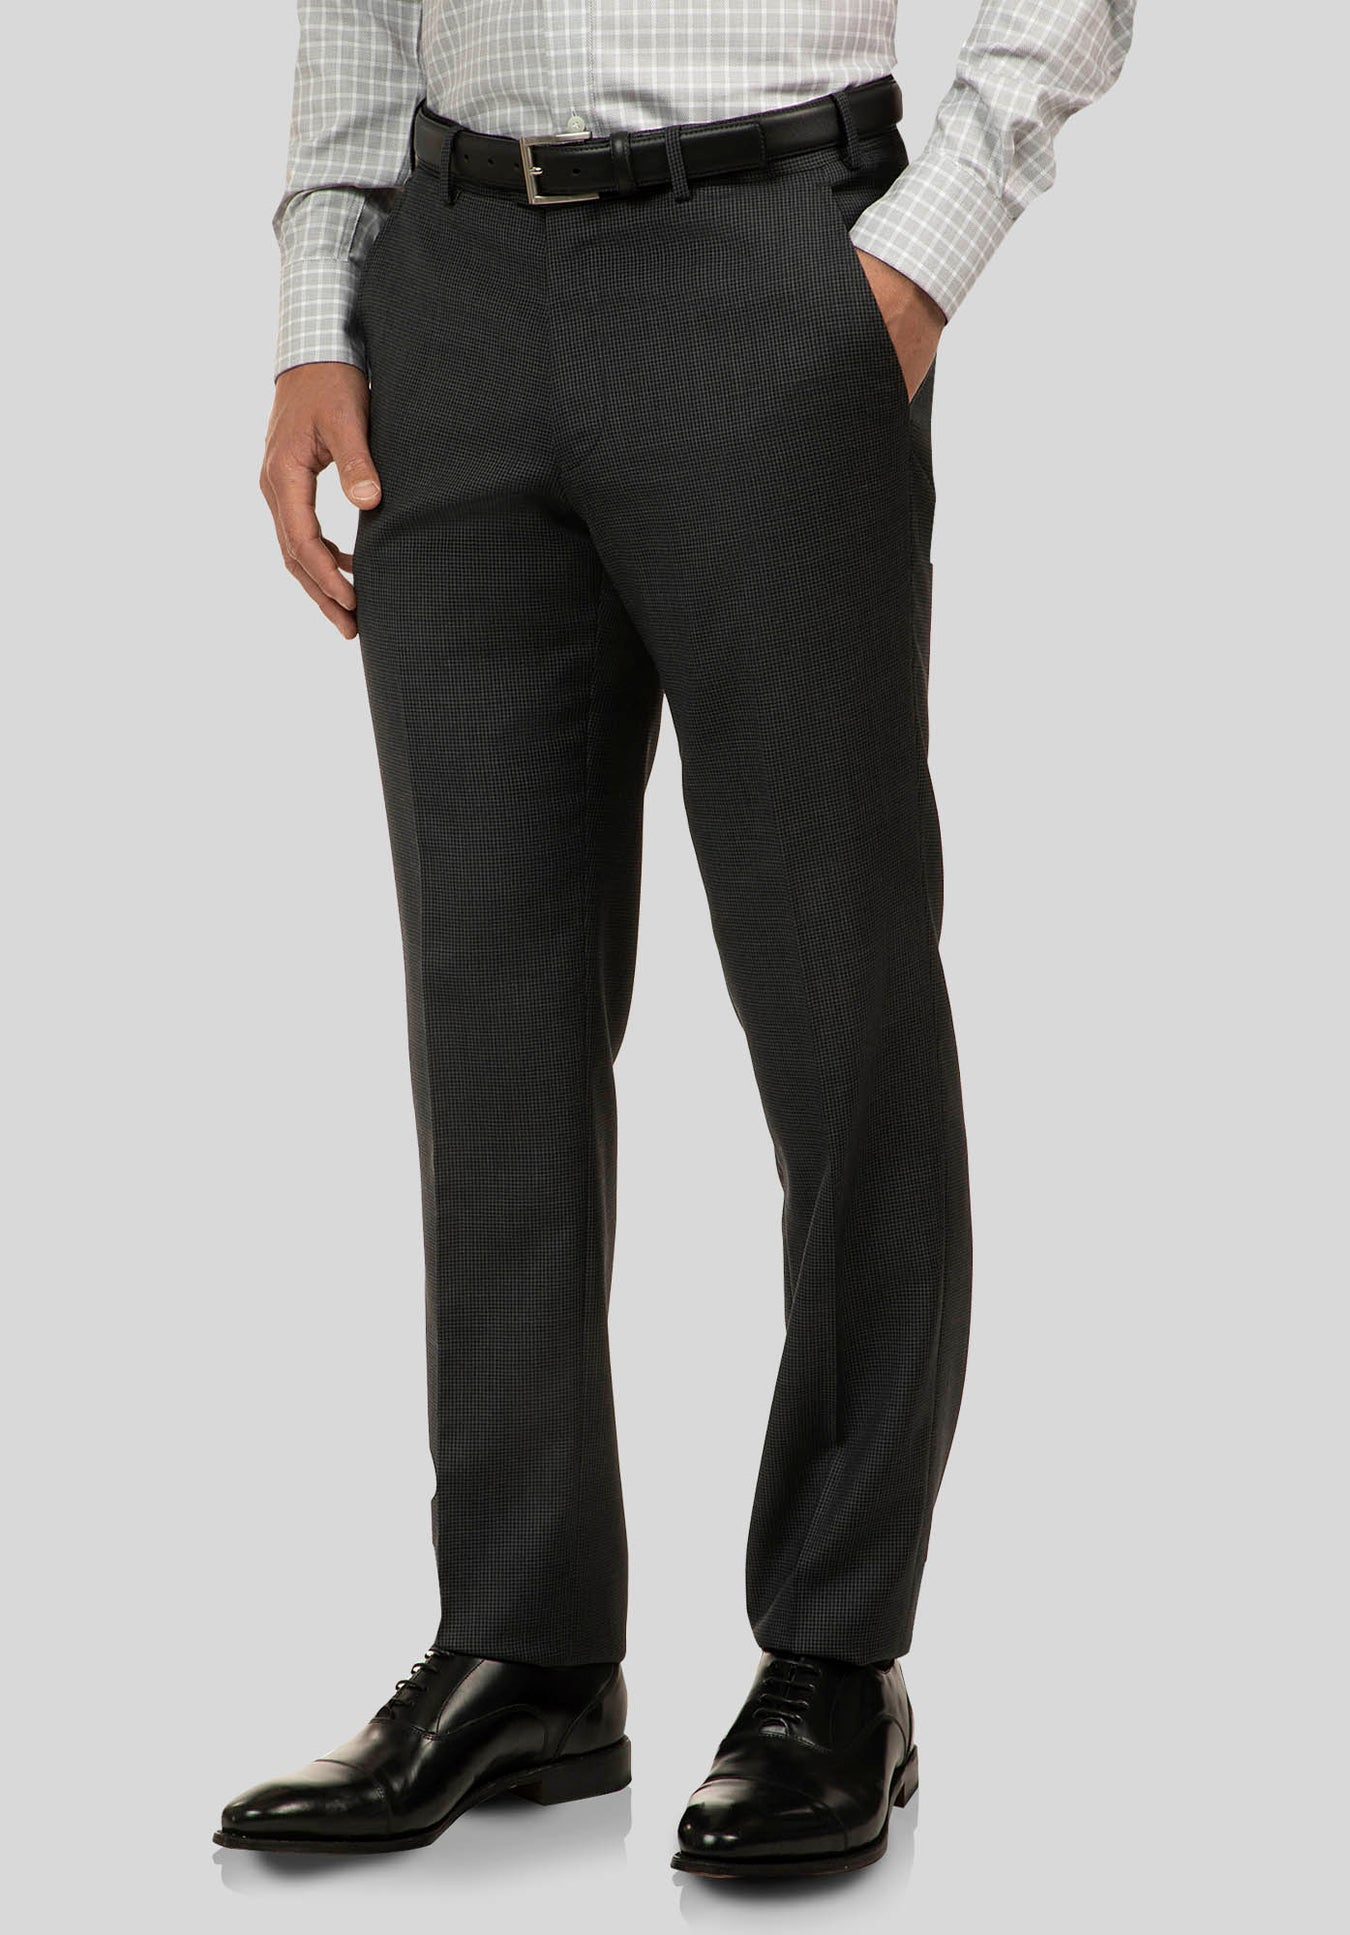 INTERCEPTOR TROUSER FCJ336 - Charcoal